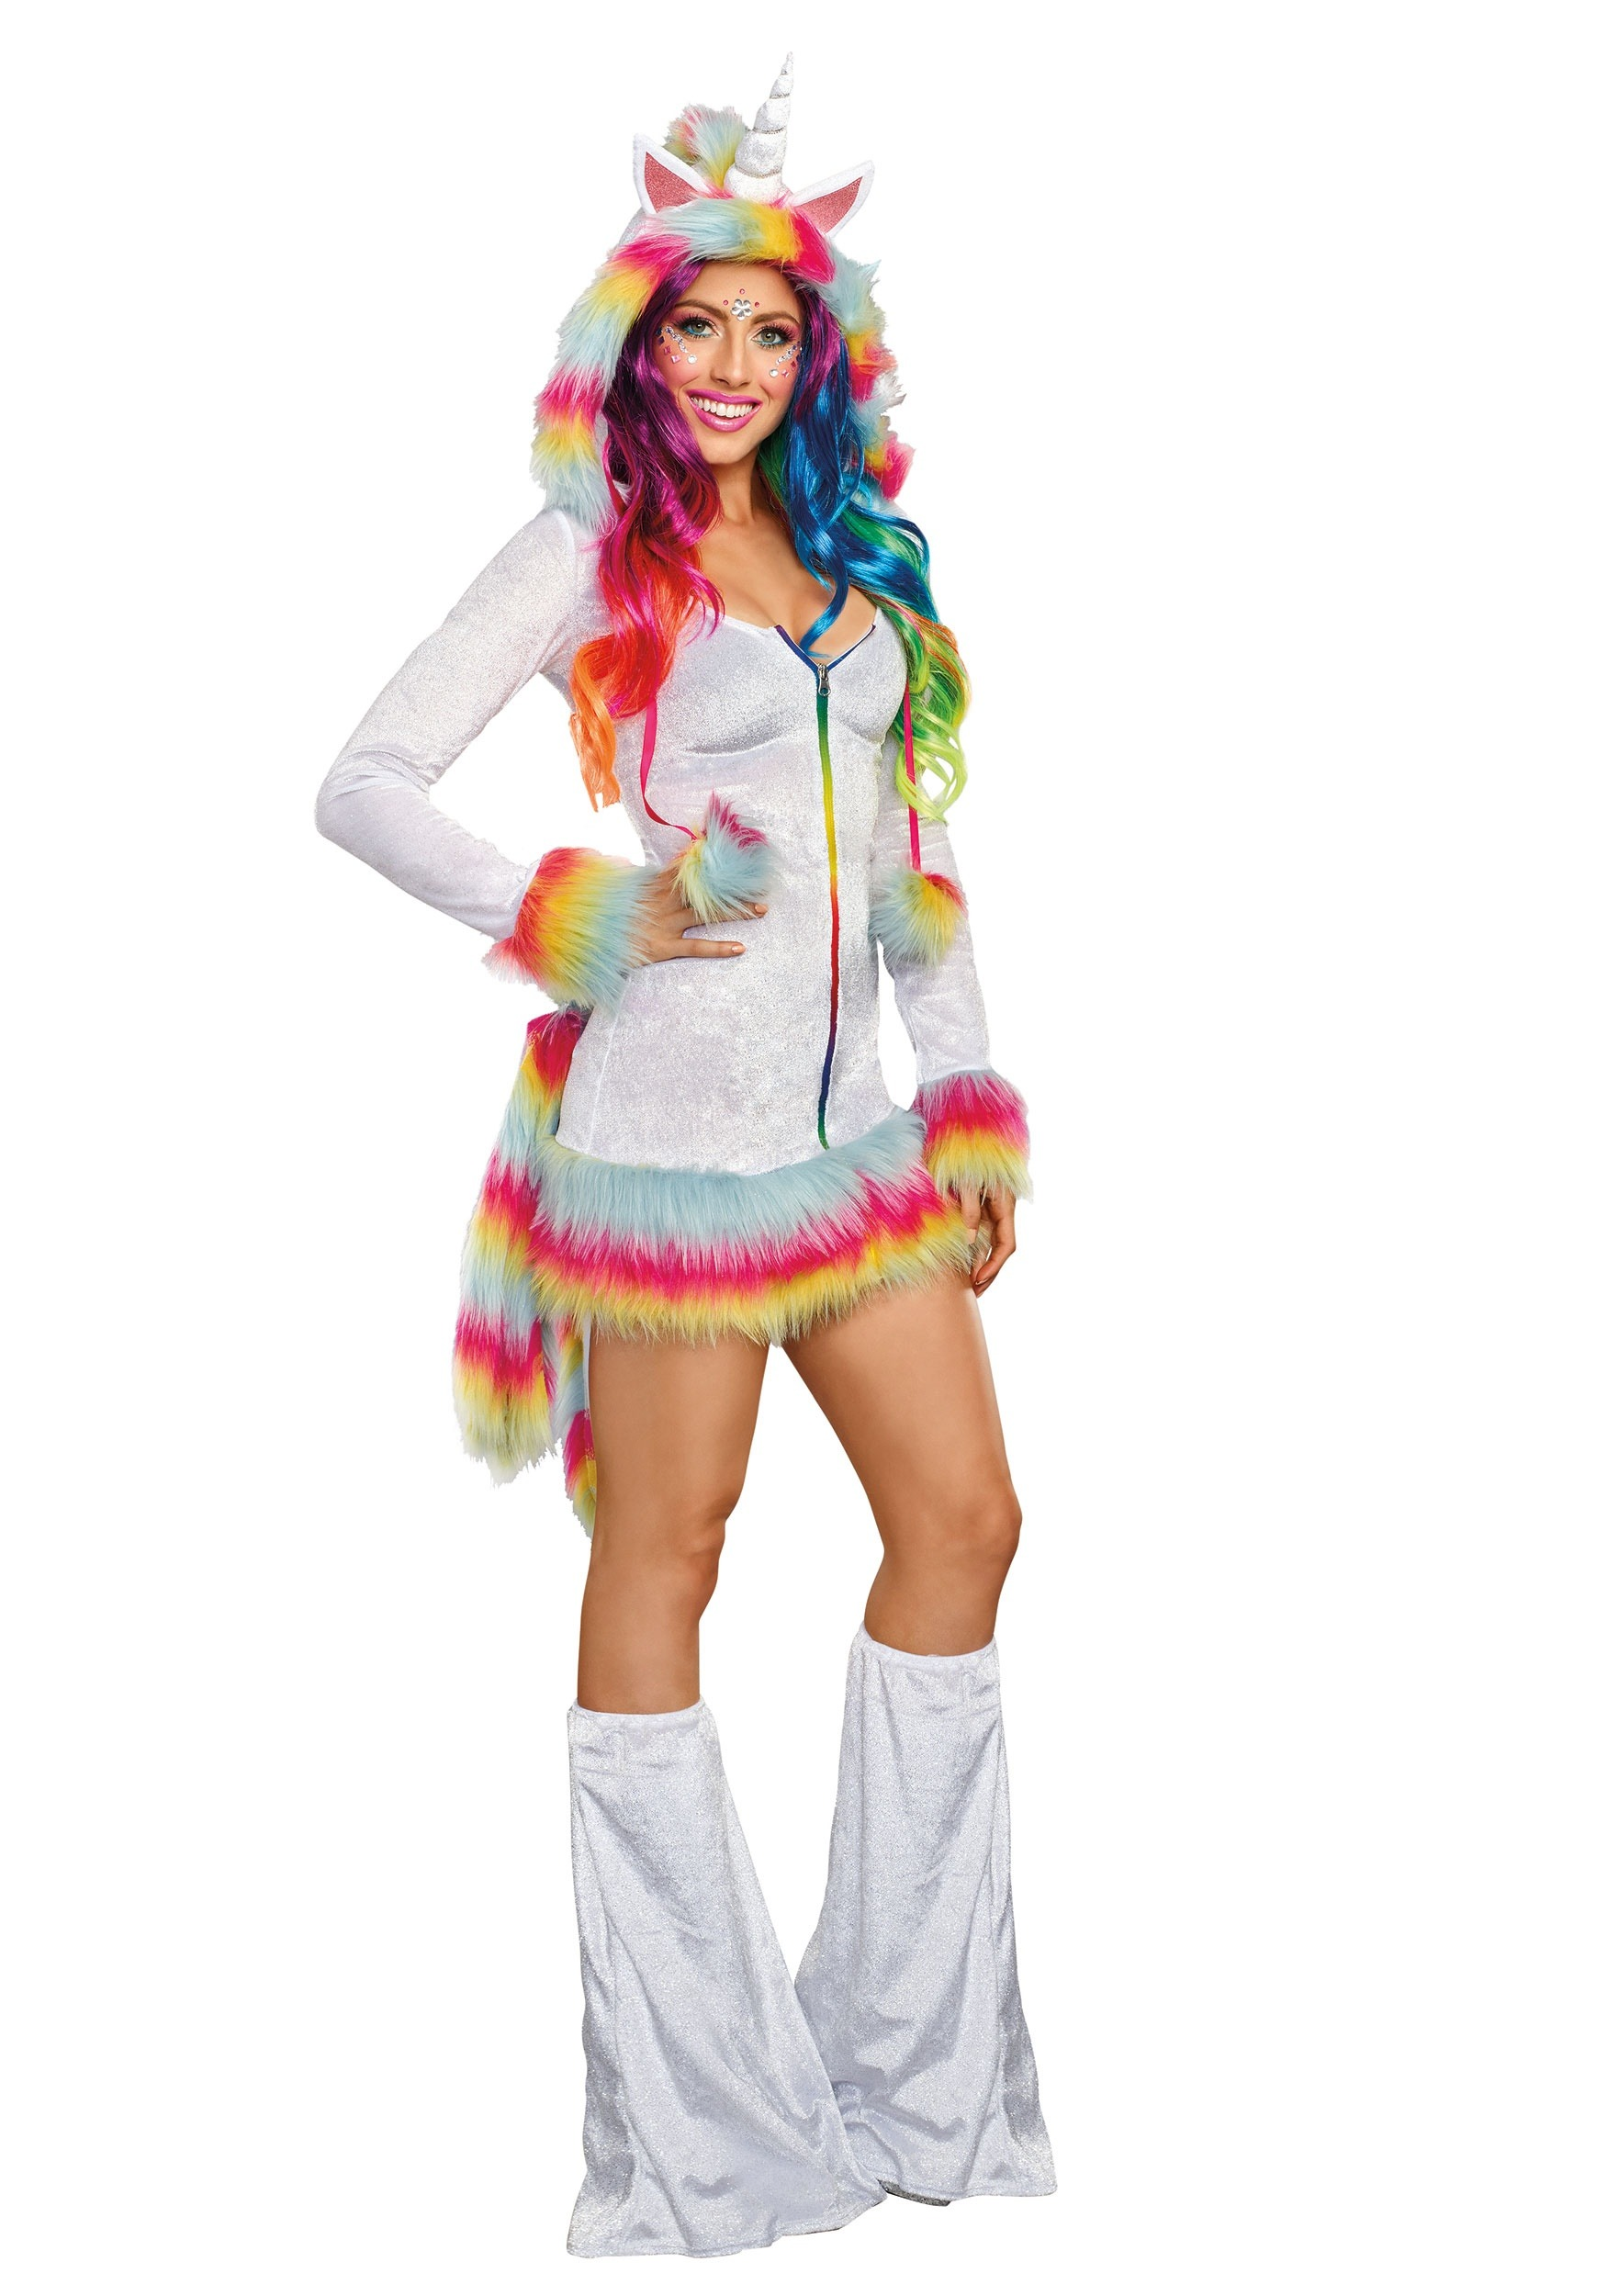 911d994d7ae452 Unicorn Beauty Costume for Women